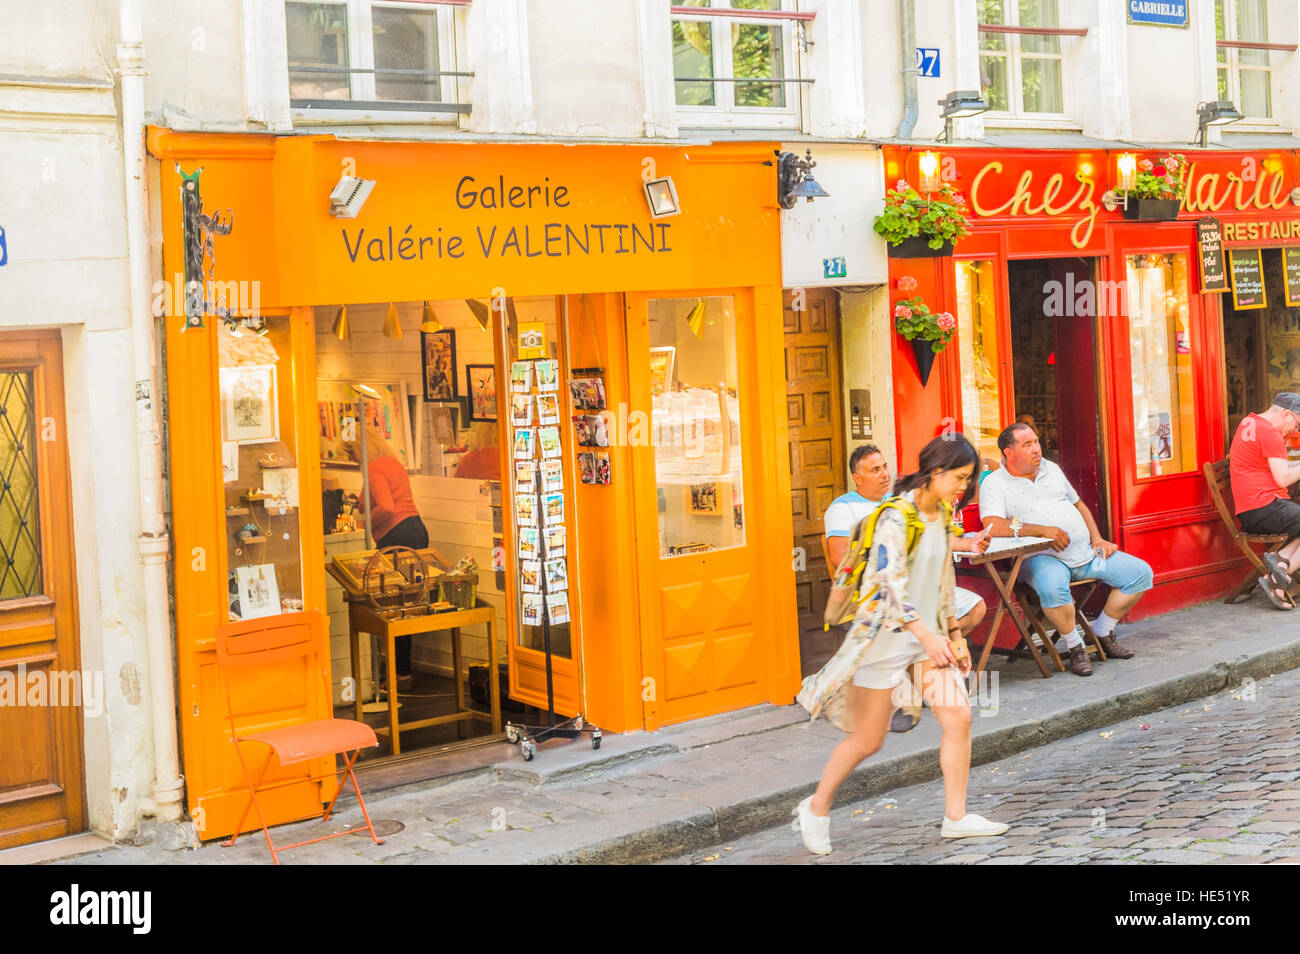 street scene in front of galerie valerie valentini and restaurant chez marie, rue gabrielle, montmartre district - Stock Image